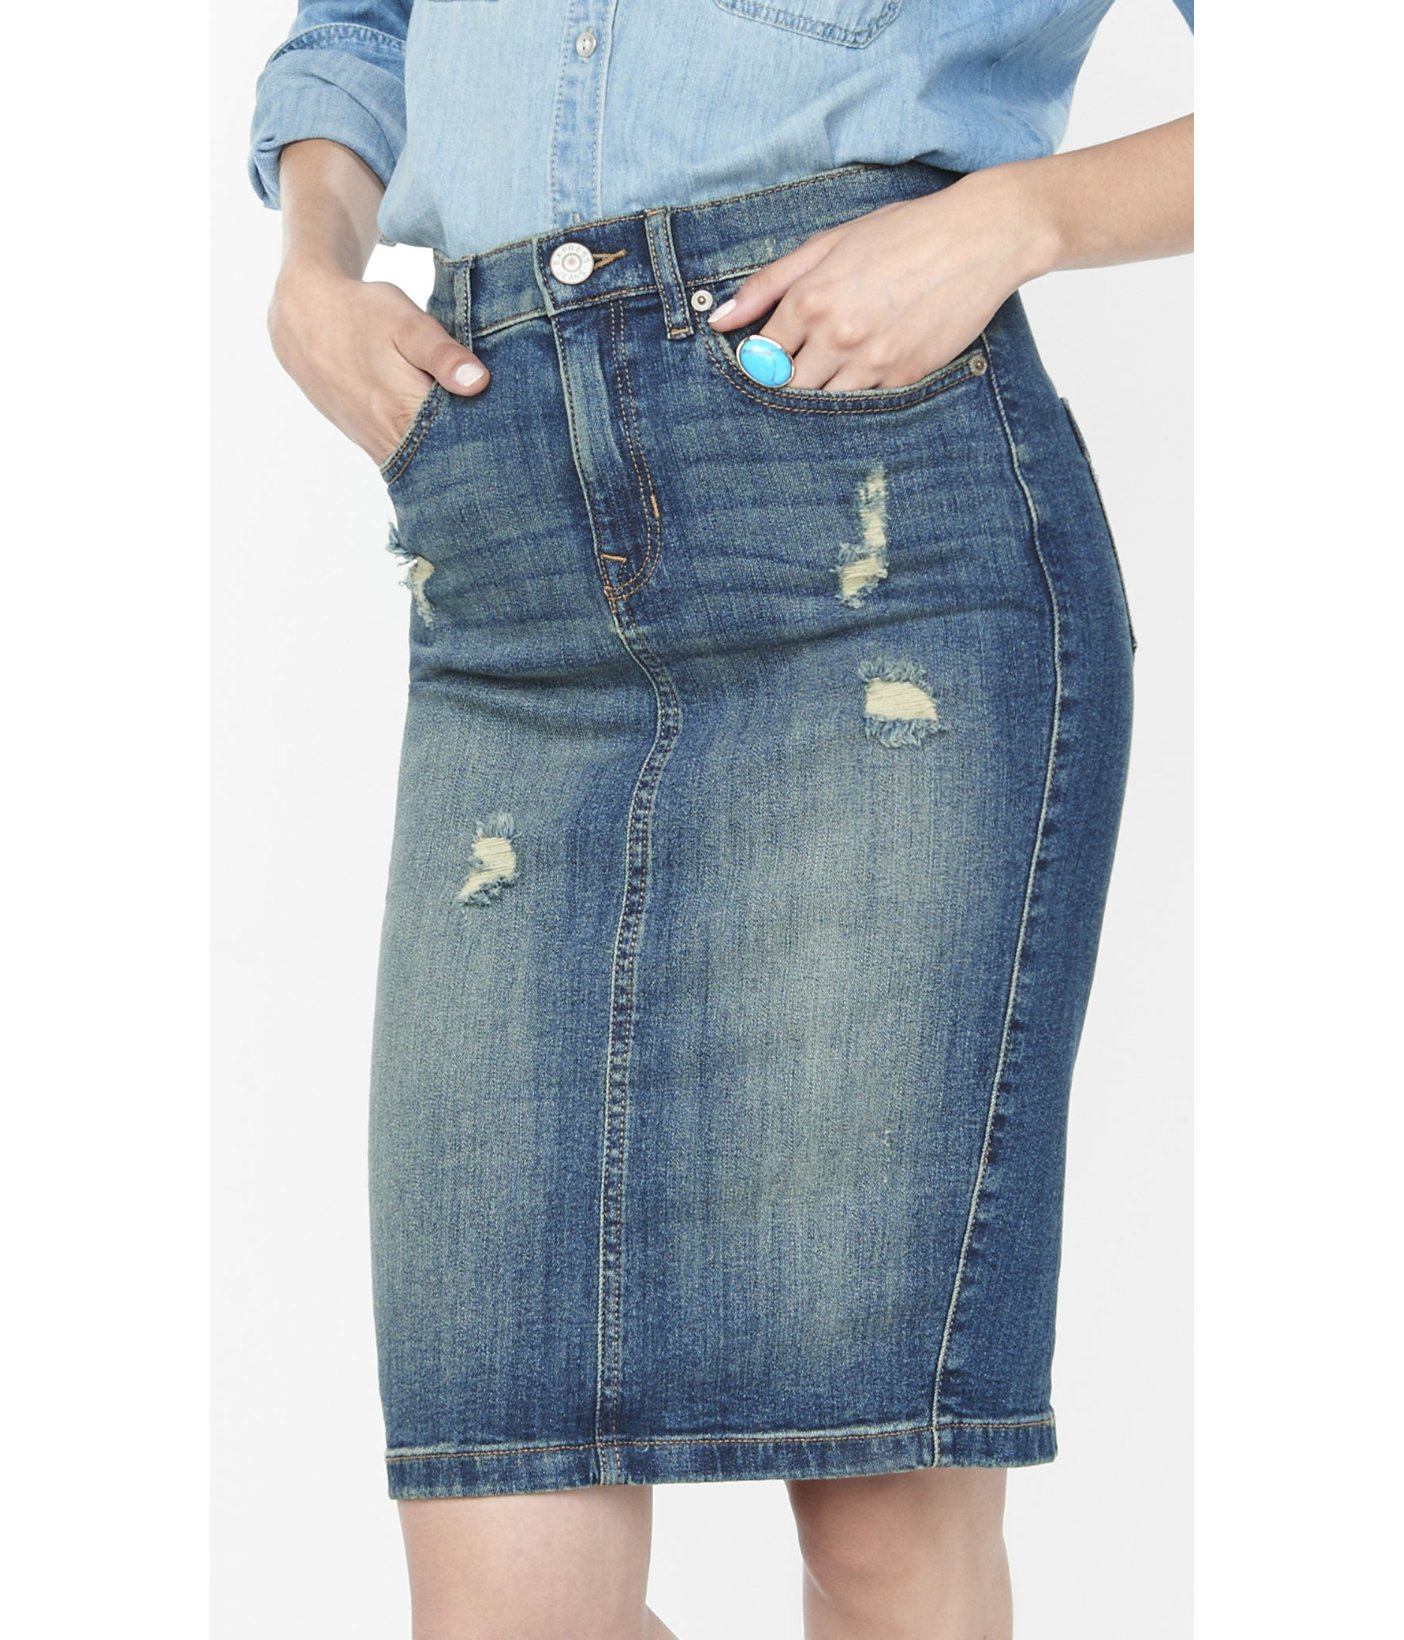 Express Distressed High Waisted Denim Pencil Skirt in Blue | Lyst